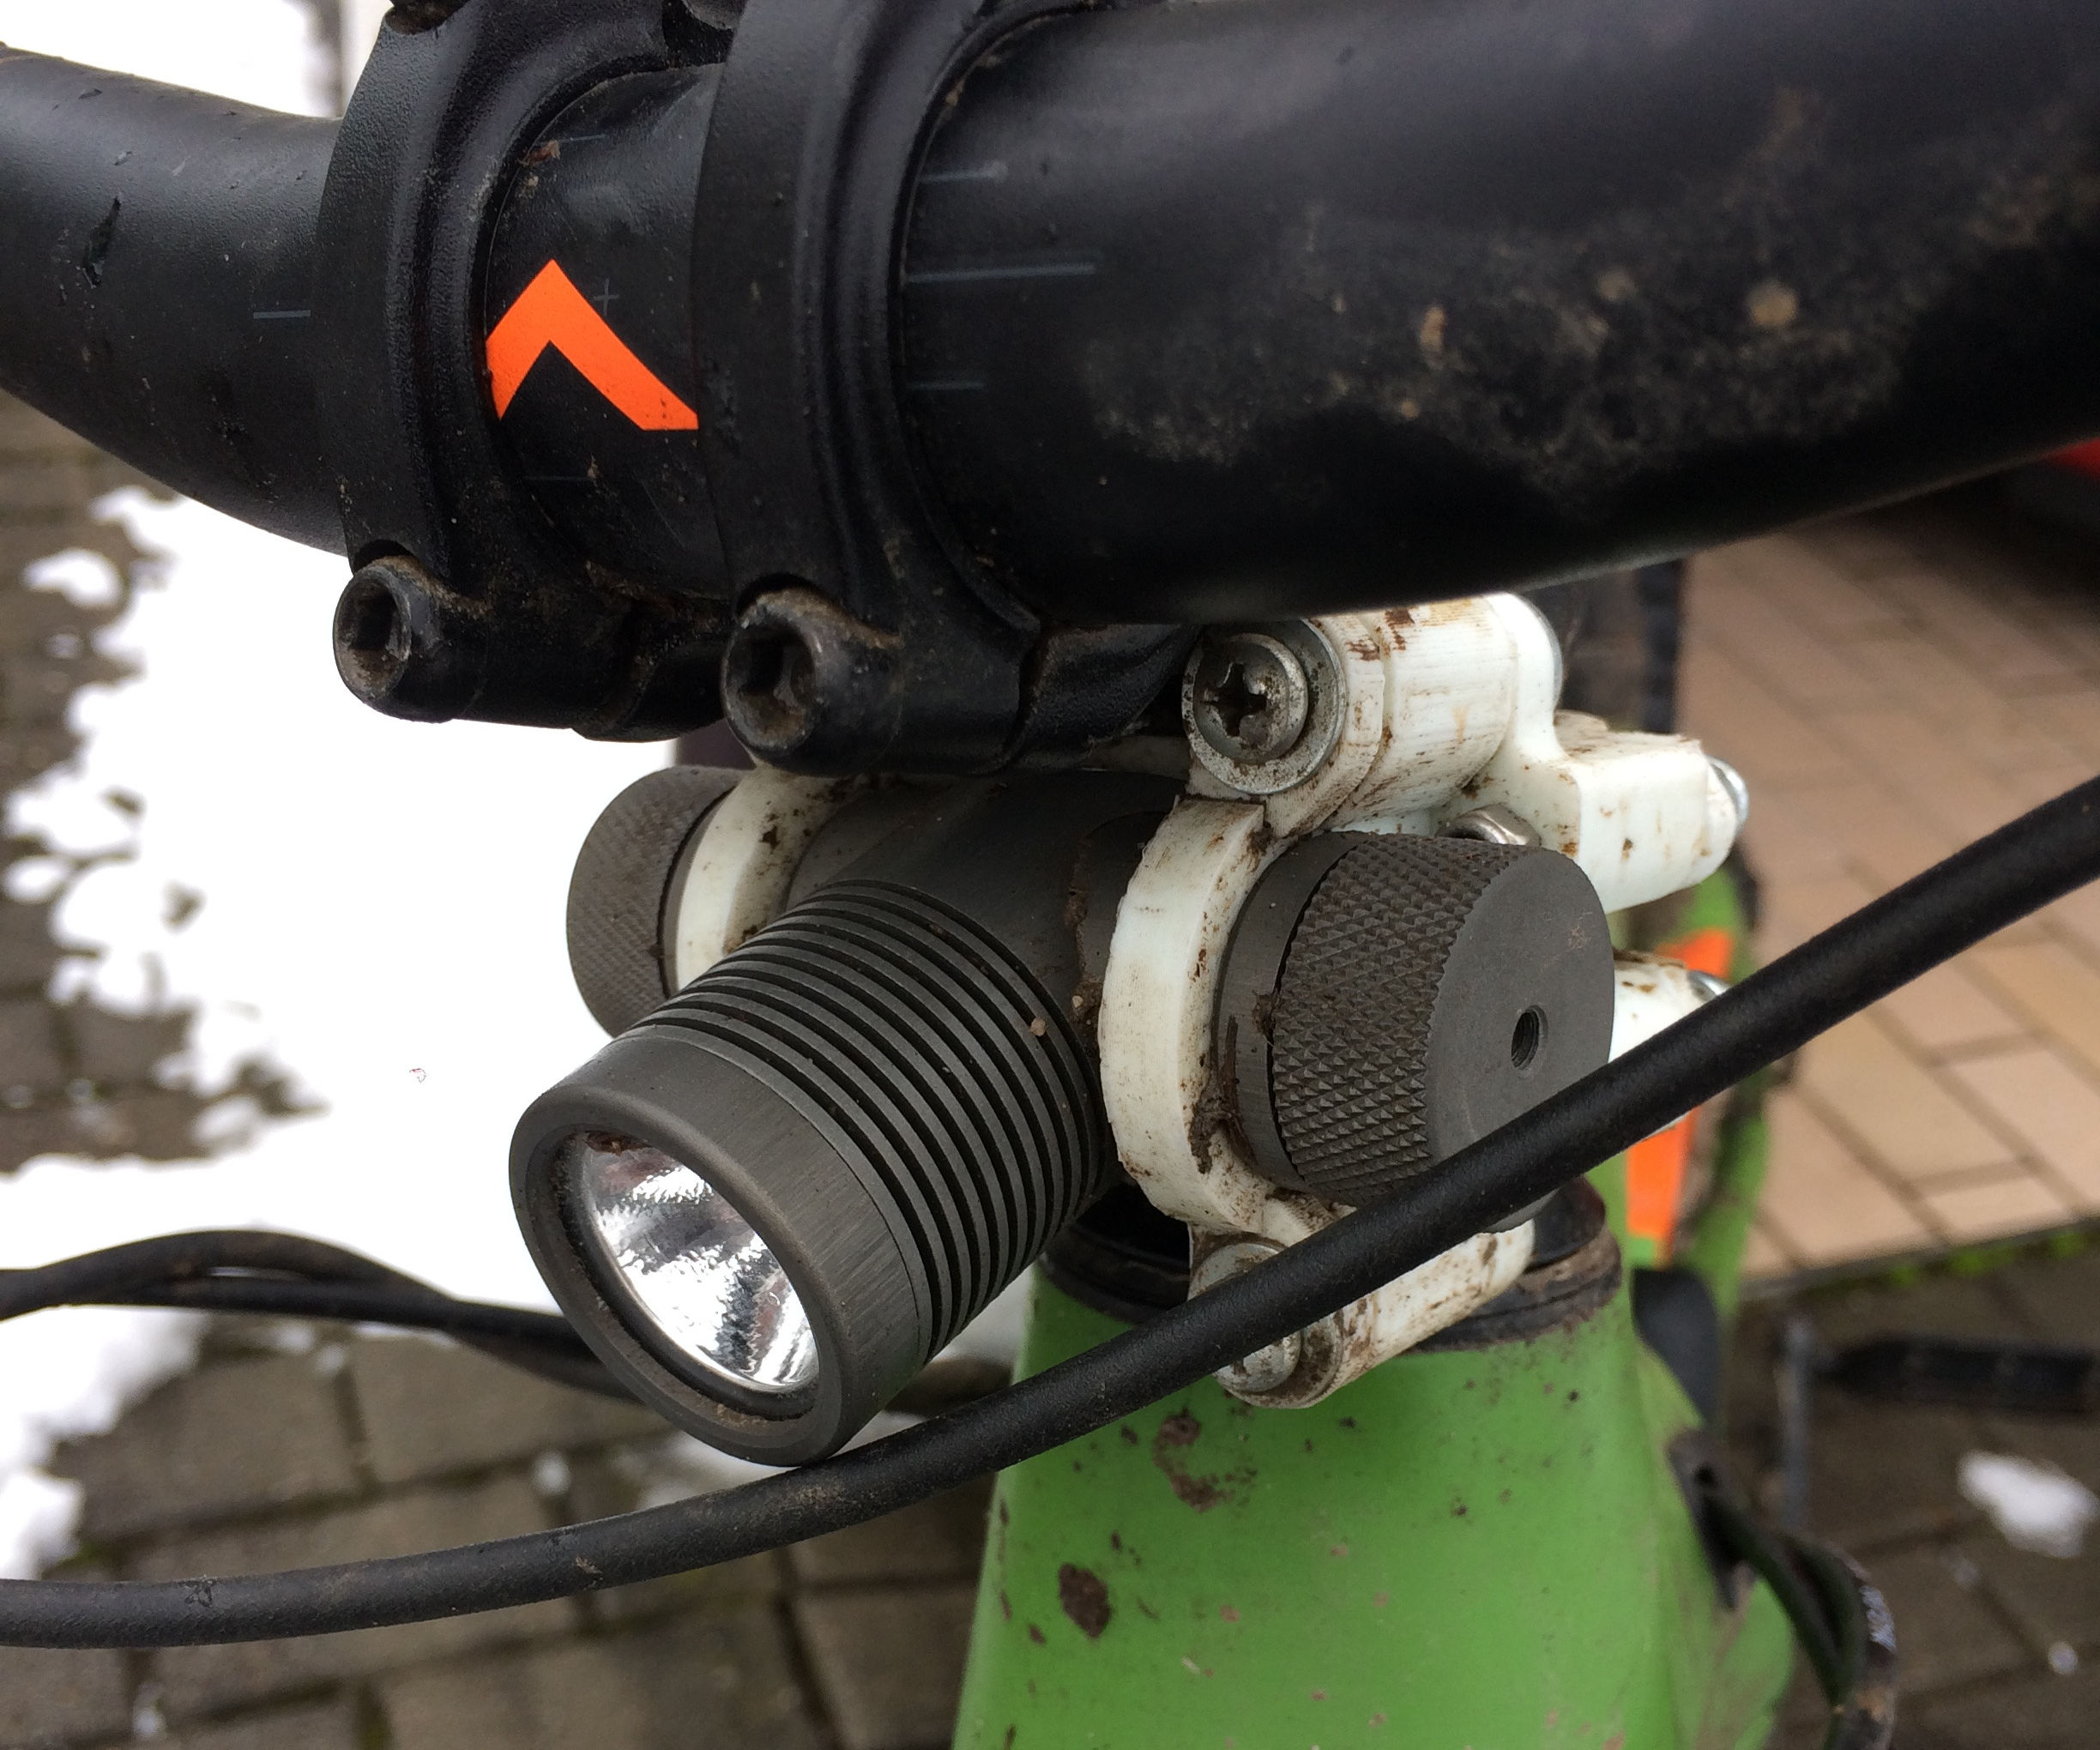 A New Light for a New Bike